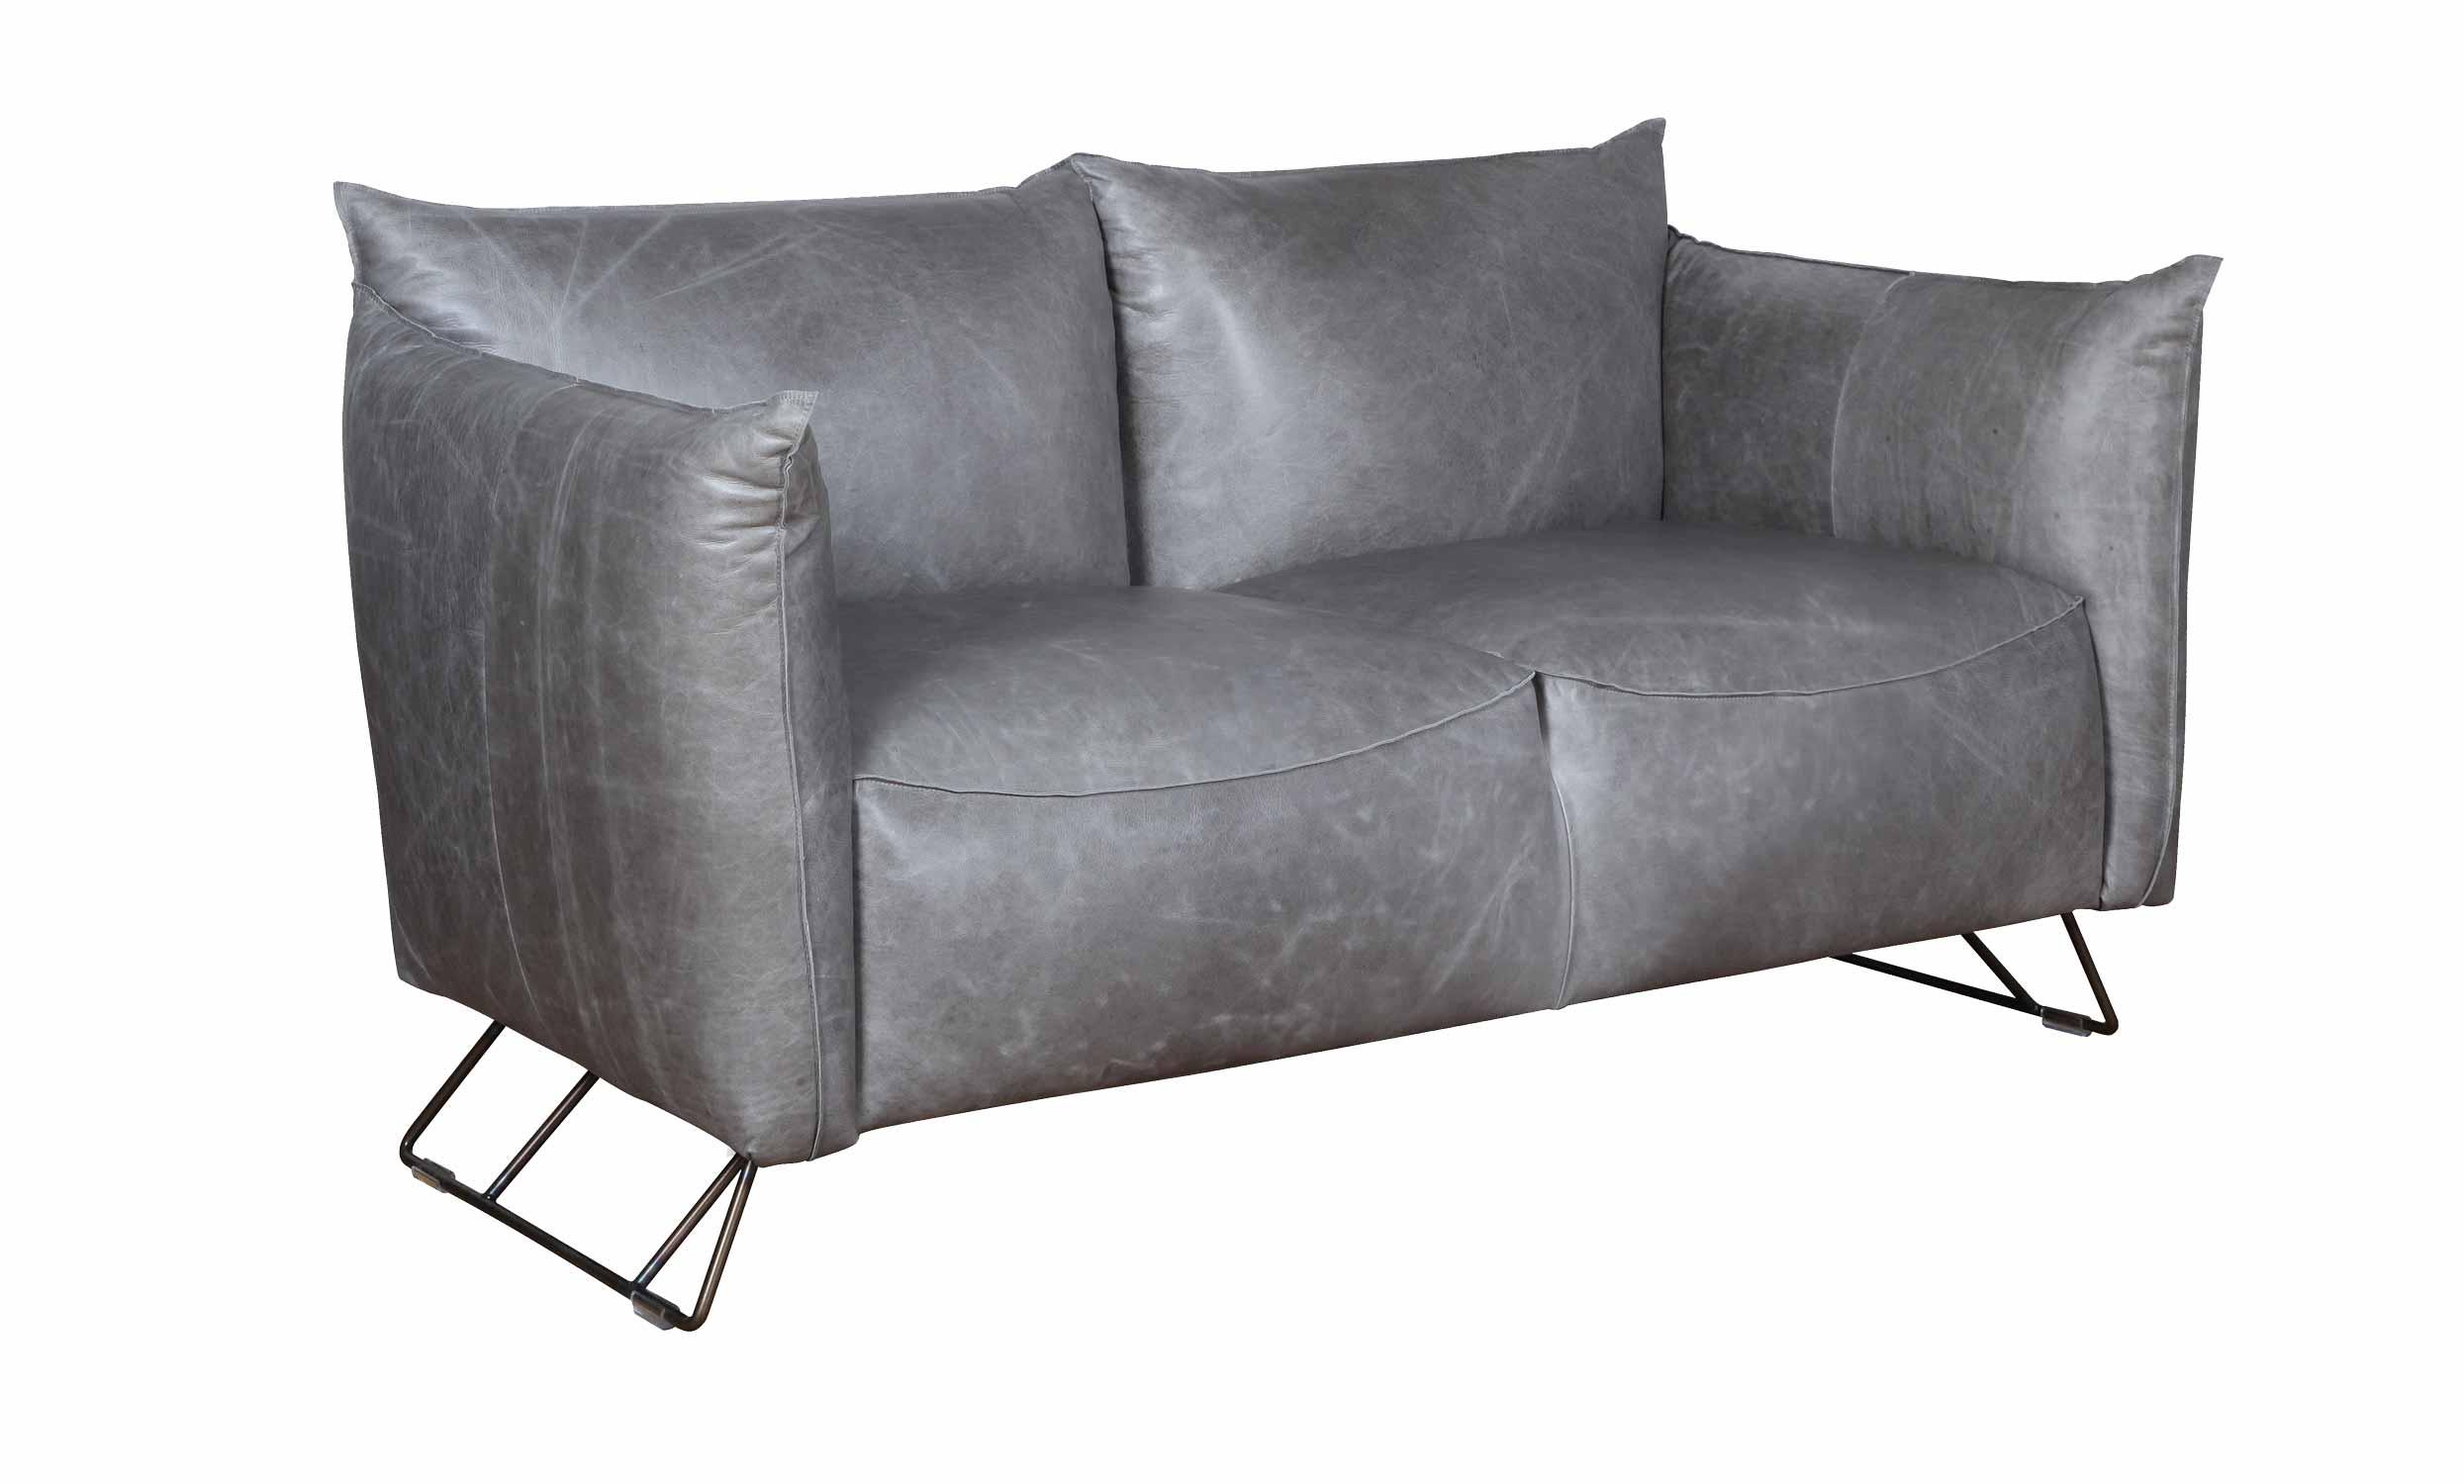 2 Seater Leather Sofa With Legs